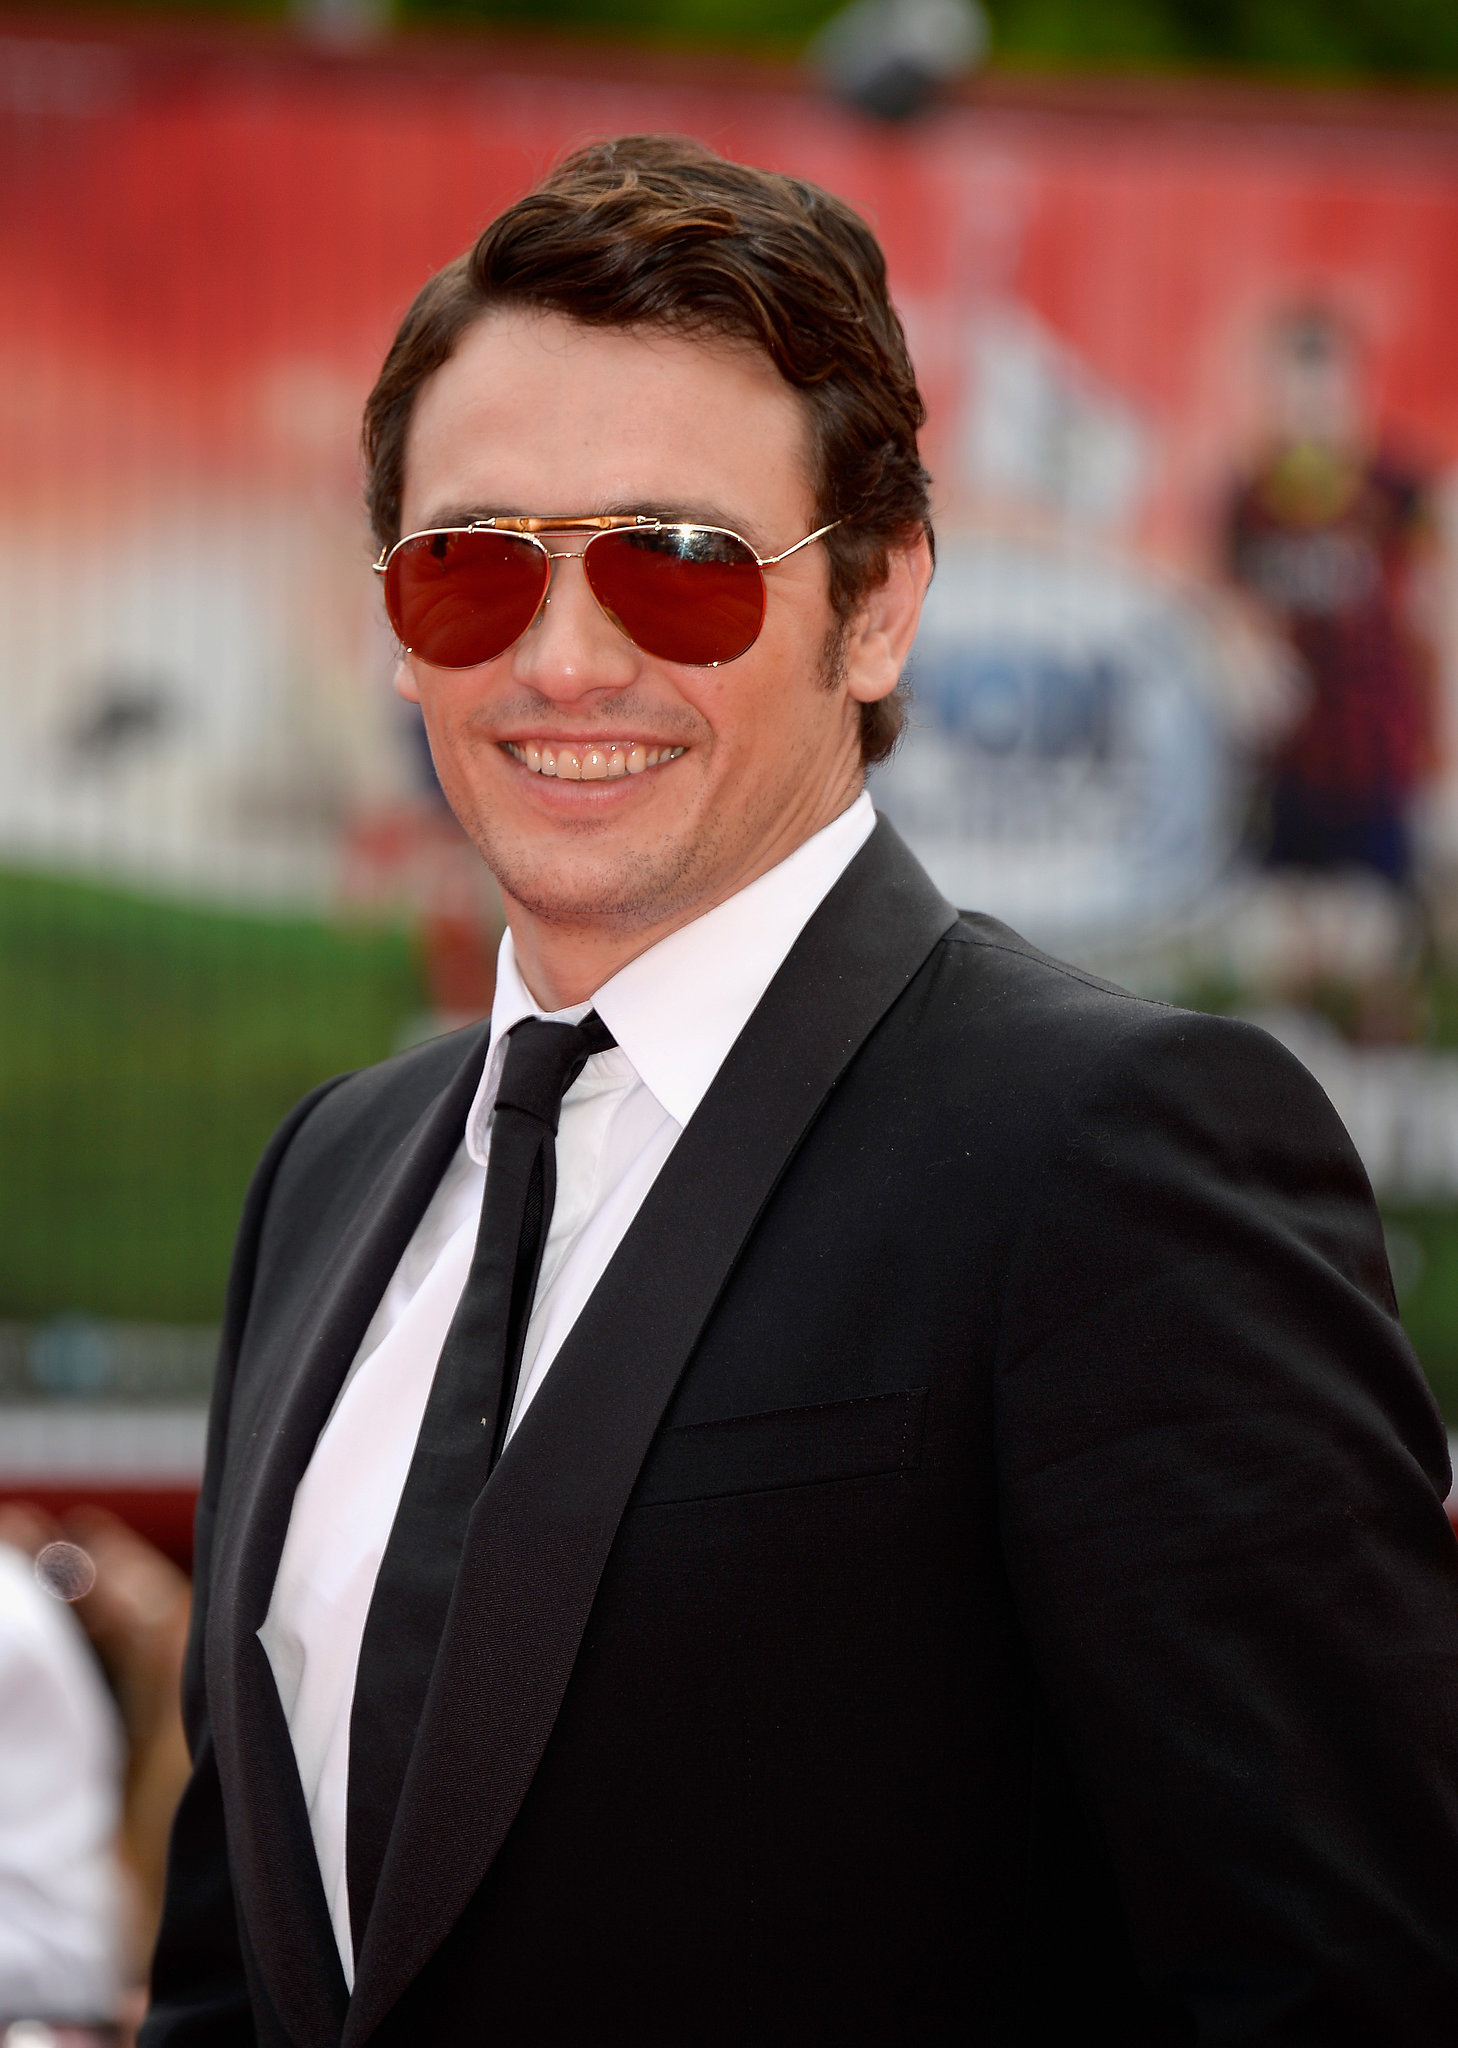 James Franco sported some shades at the Palo Alto premiere.